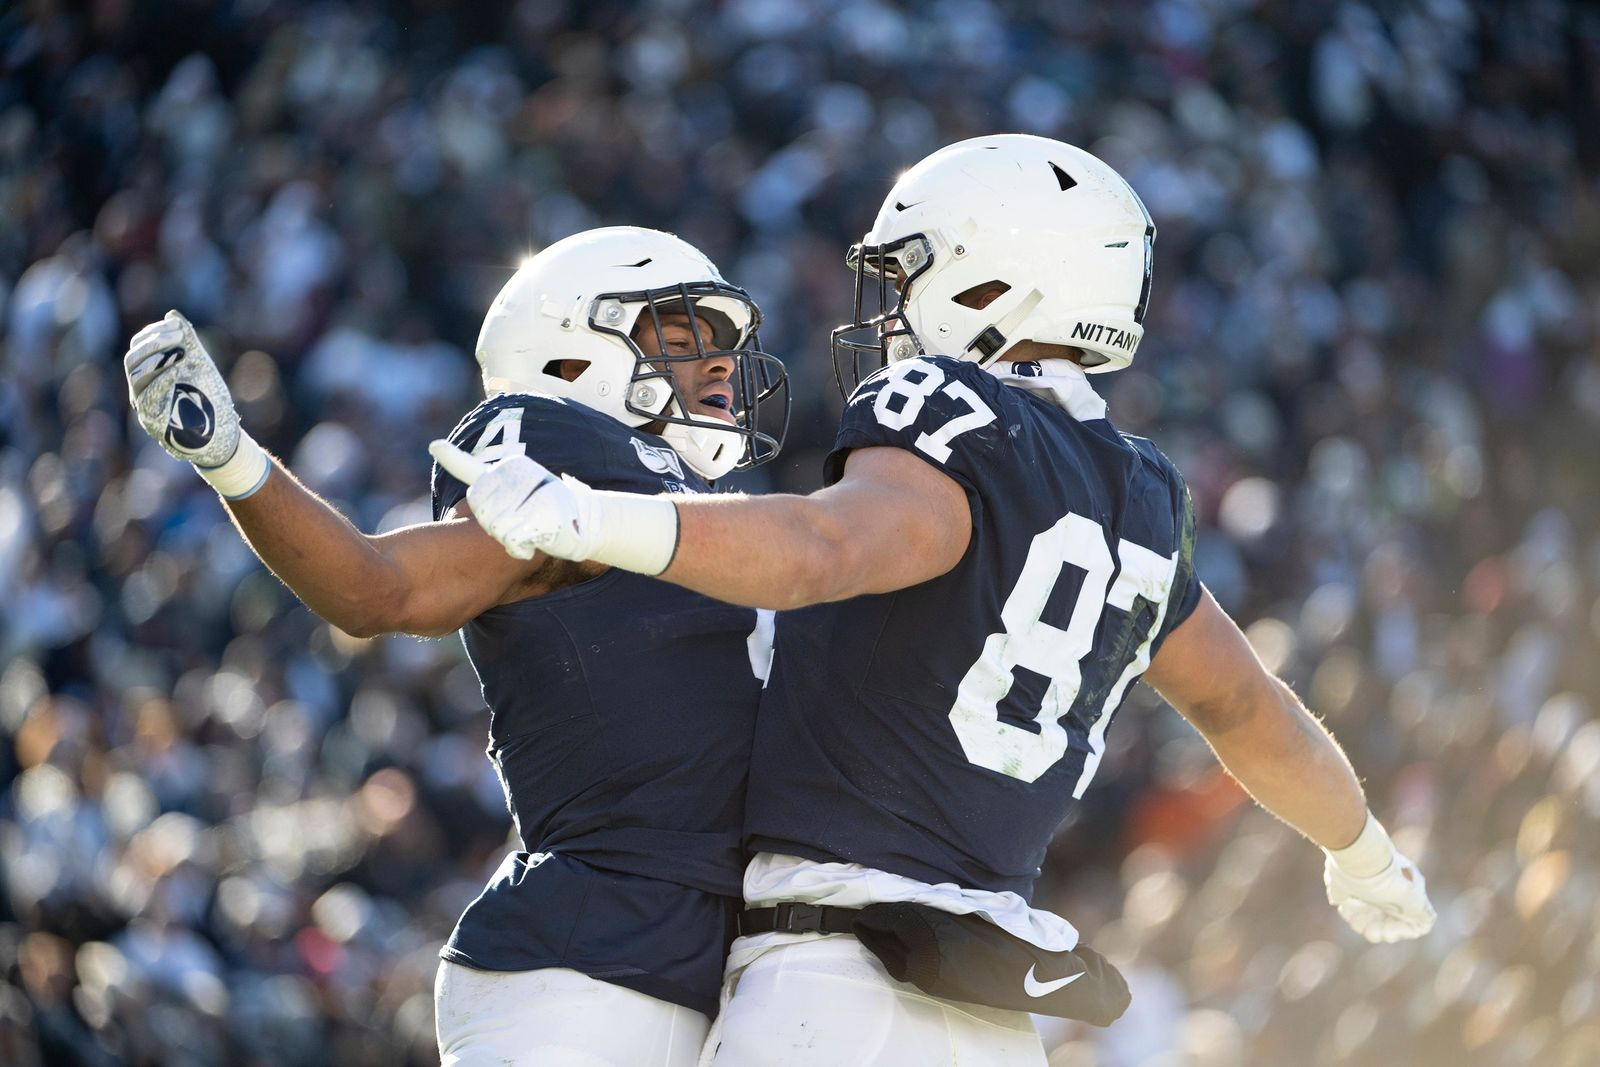 Penn State running back Journey Brown (4) celebrates with tight end Pat Freiermuth (87) after scoring on a 35-yard touchdown in the third quarter of an NCAA college football game against Indiana in State College, Pa., on Saturday, Nov.16, 2019. Penn State defeated 34-27. (AP Photo/Barry Reeger)